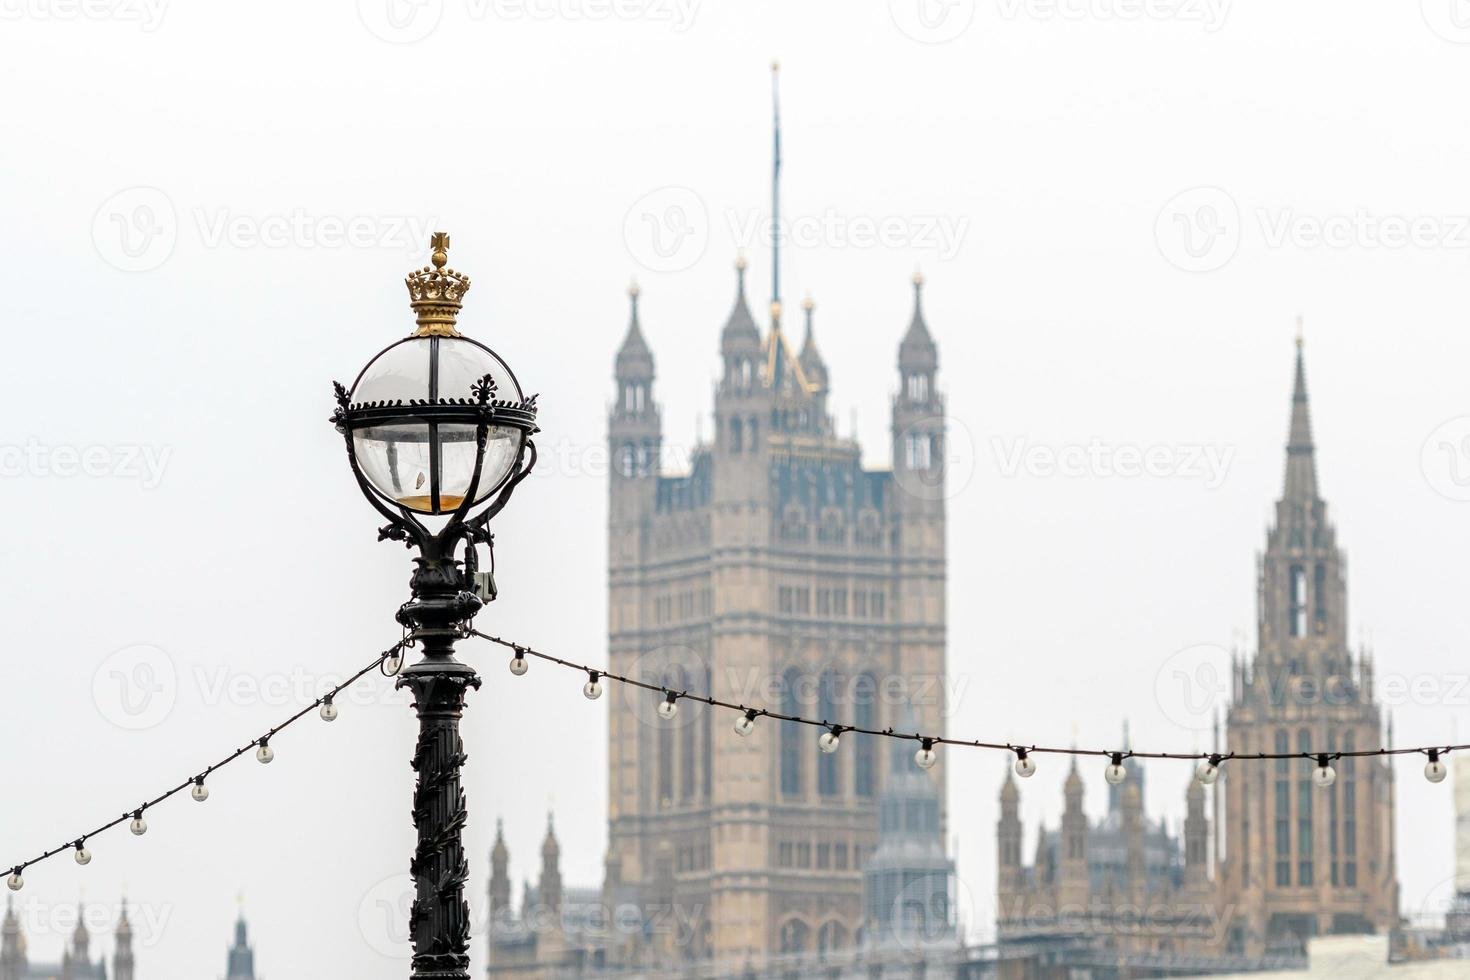 Dolphin lamp standard on Thames Embankment in London at the Westminster Bridge, bloored Westminster Abbey on background photo